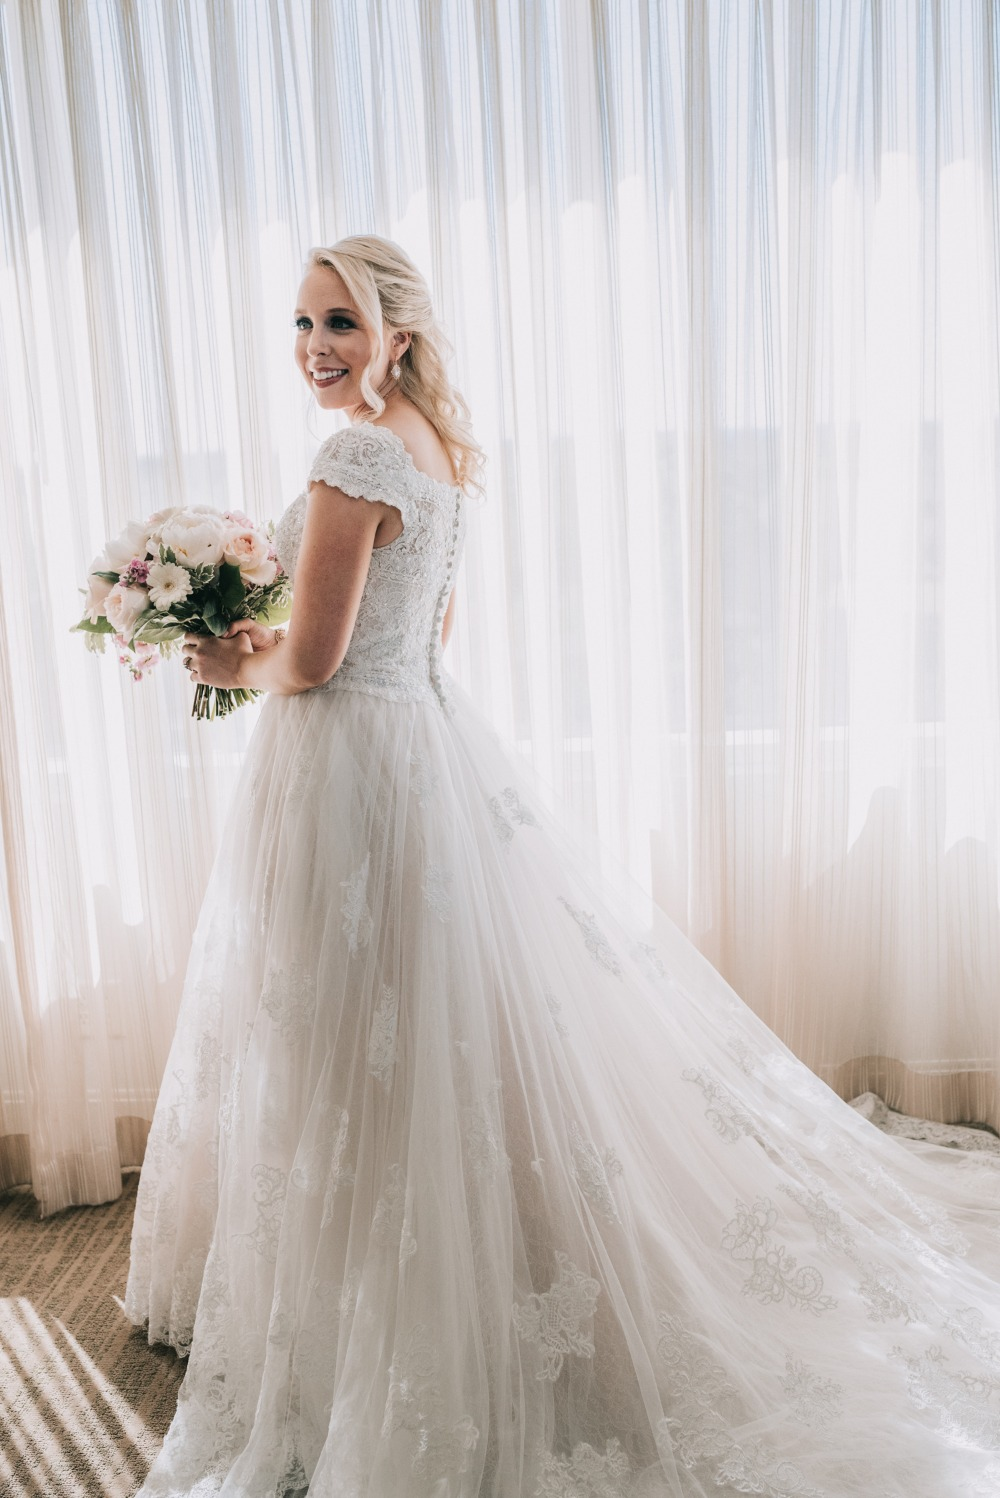 beautiful bride in Oleg Cassini wedding dress